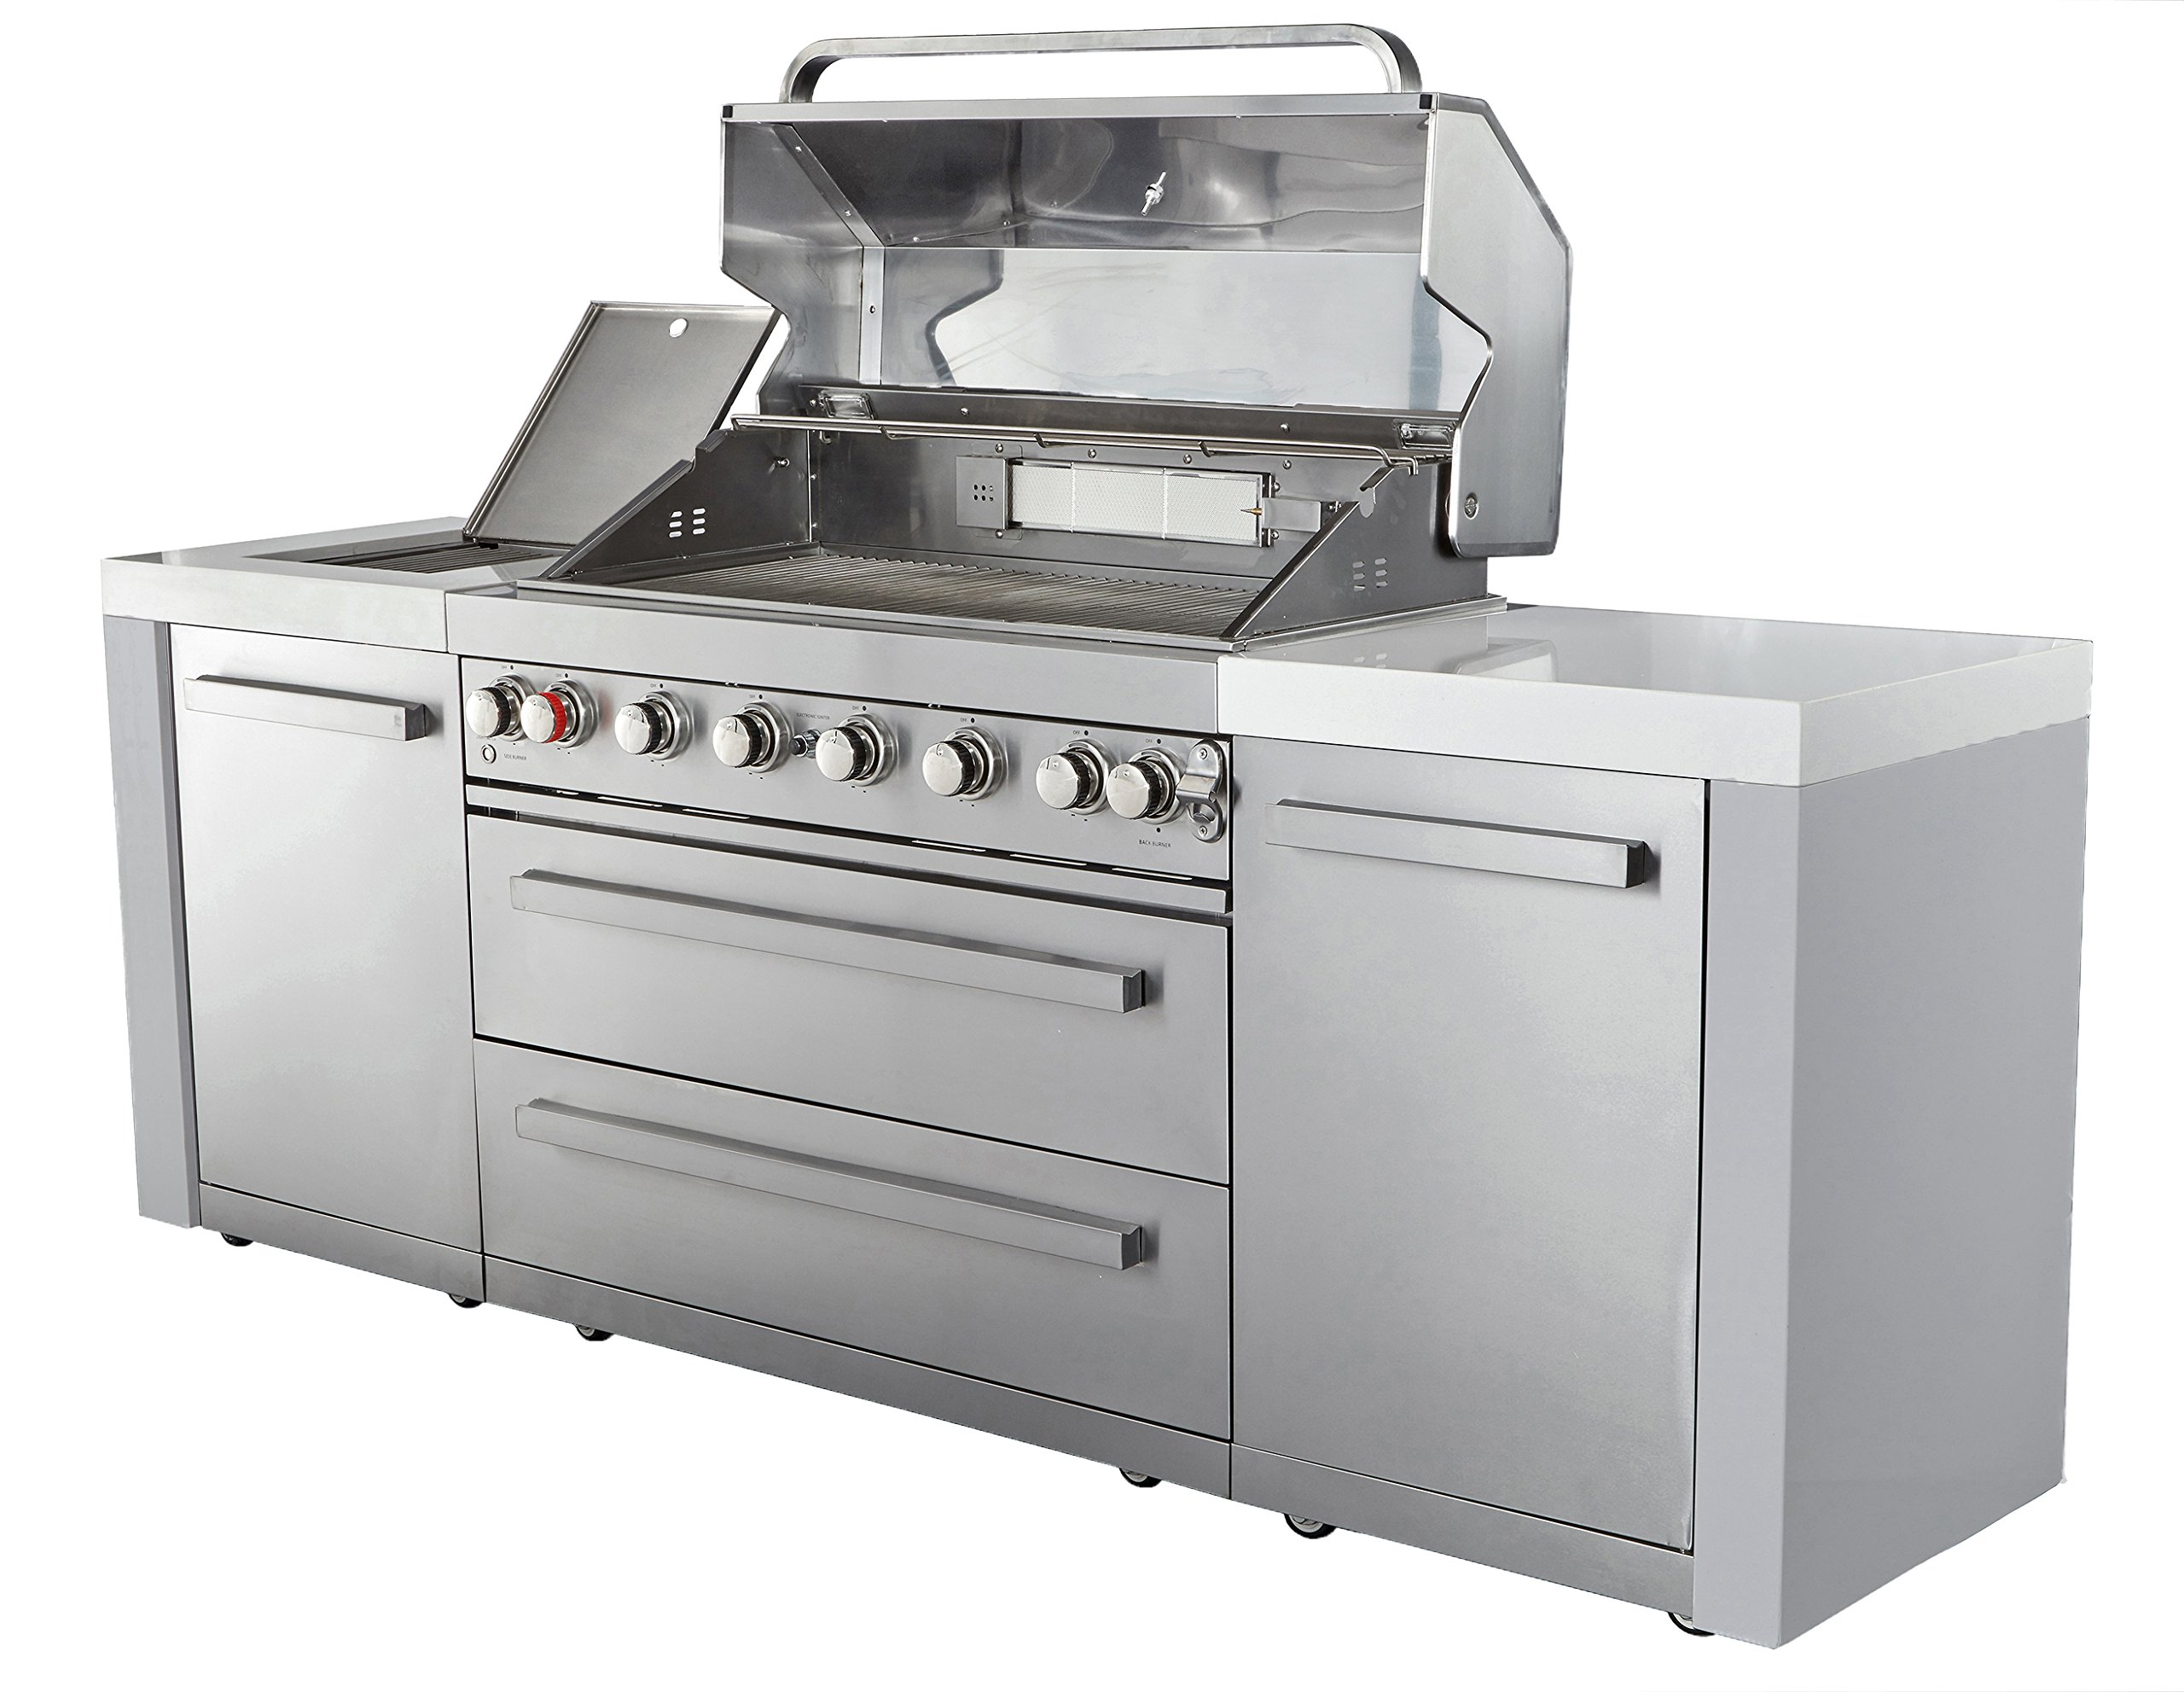 Mont Alpi MAI805 44'' Outdoor Barbeque Island, 47.00 x 20.00 x 93.00 inches, Stainless Steel by Mont Alpi (Image #2)